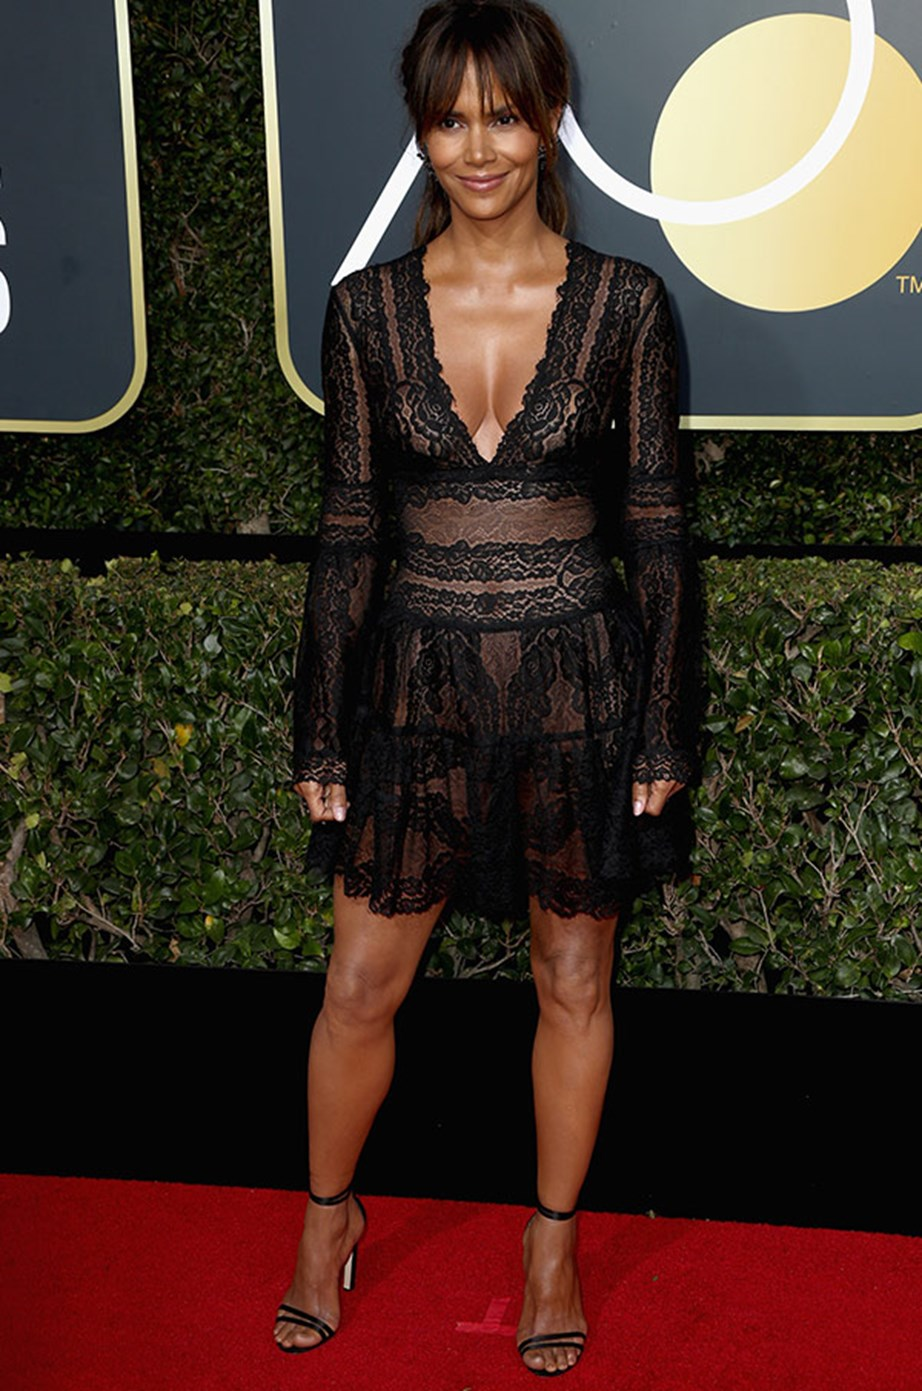 Halle Berry as stunning as ever in this lacy number.